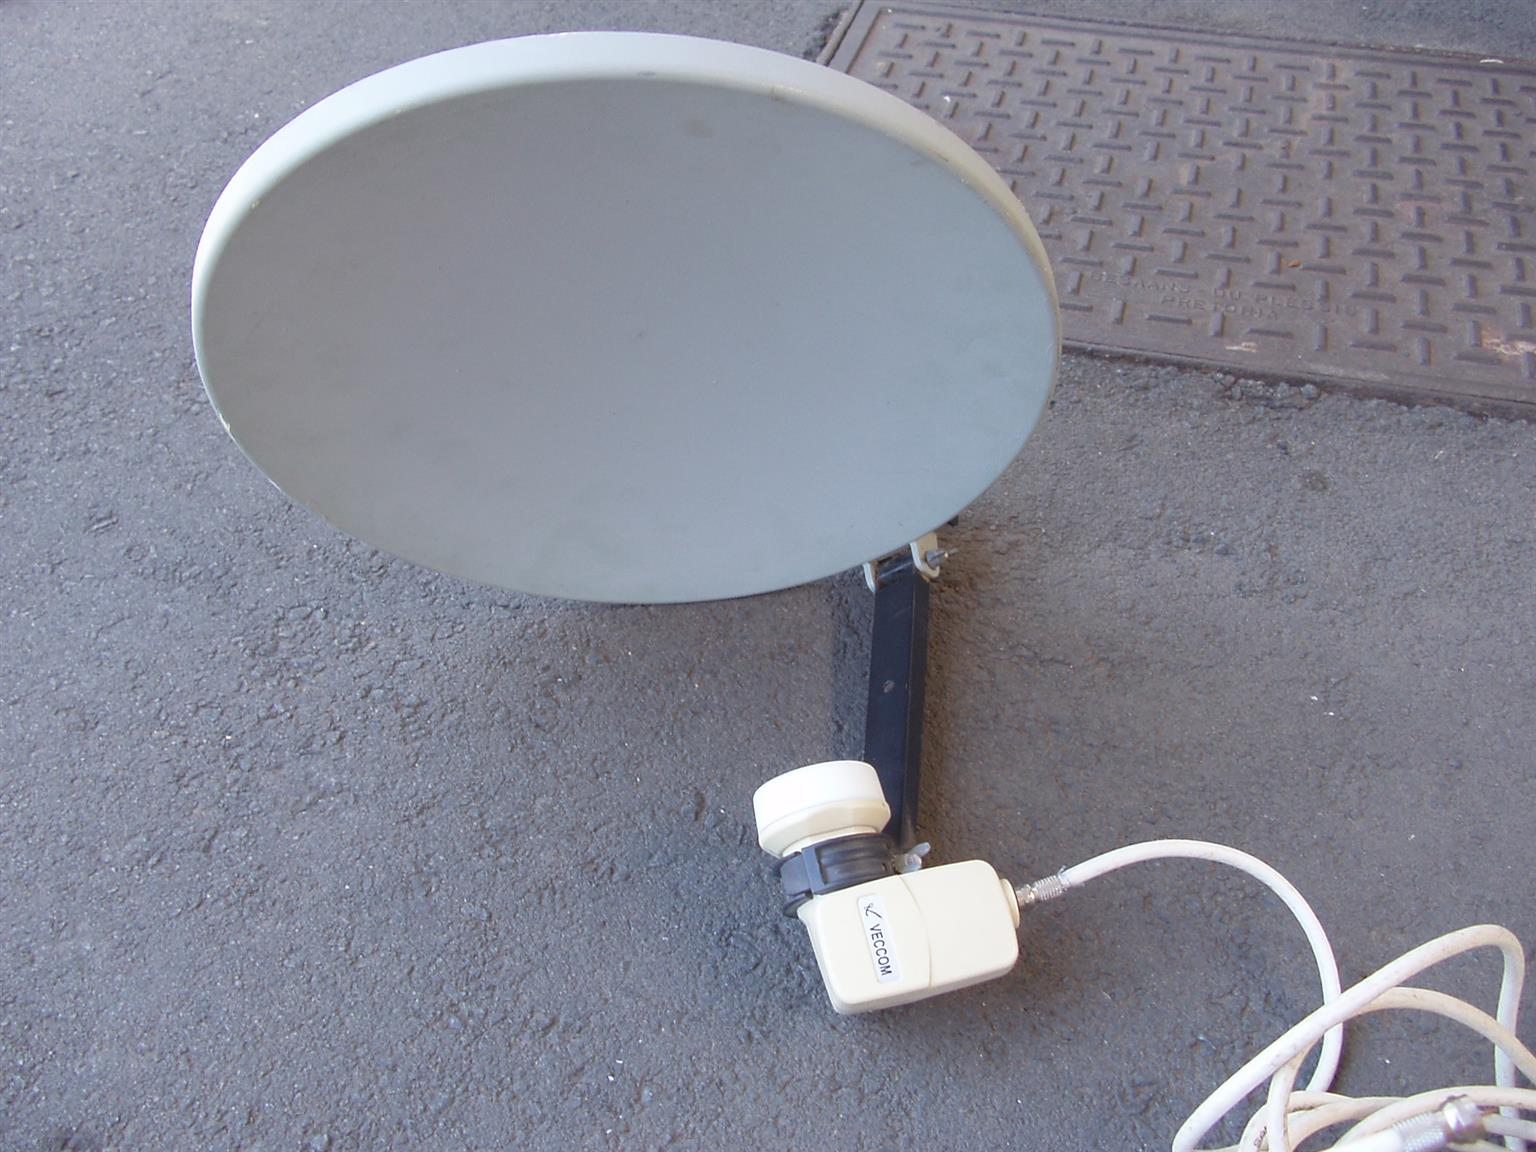 Mobile Satelite Aerial for Camping / Caravaning - with extension aerial cable